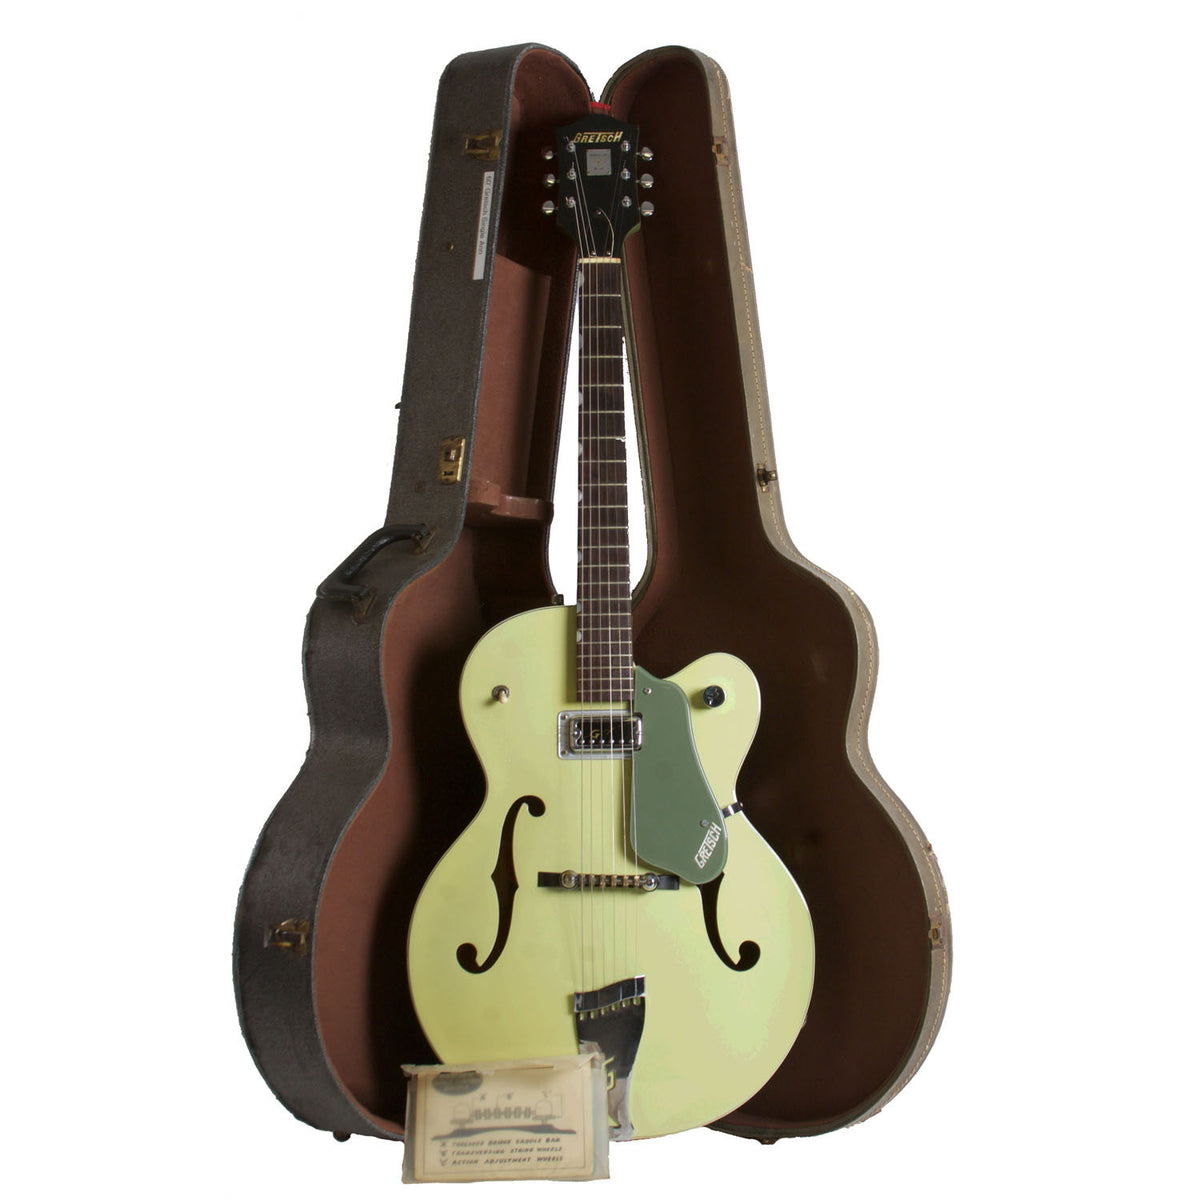 1960 Gretsch 6125 Single Anniversary - Garrett Park Guitars  - 9